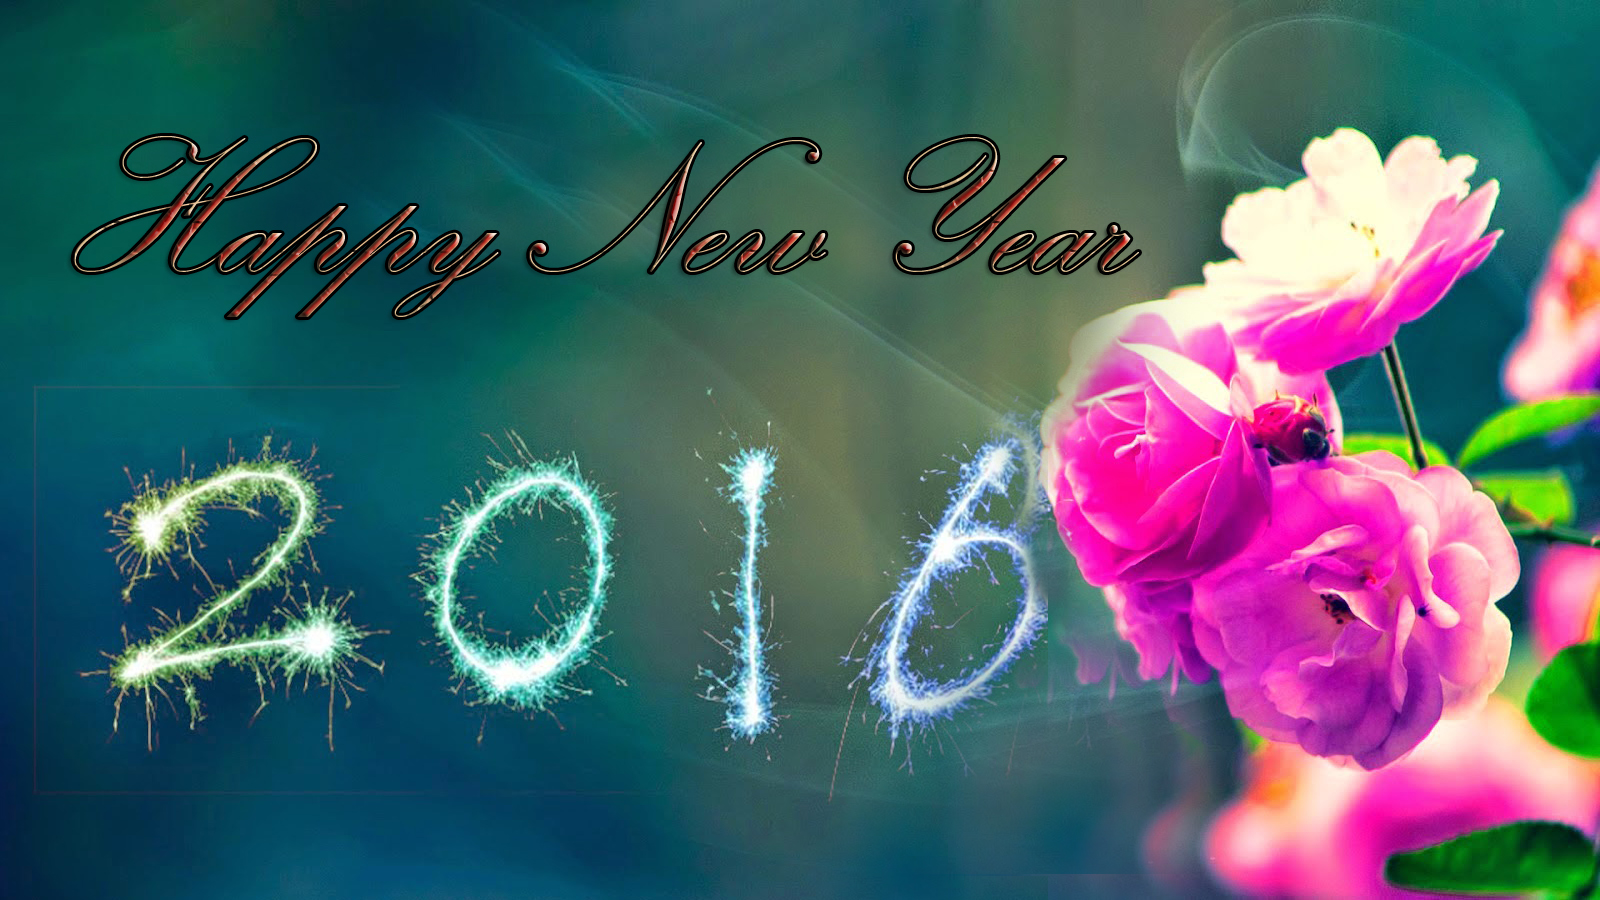 Happy-New-Year-2016-New-Wallpapers-And-Images-Download-Free-1